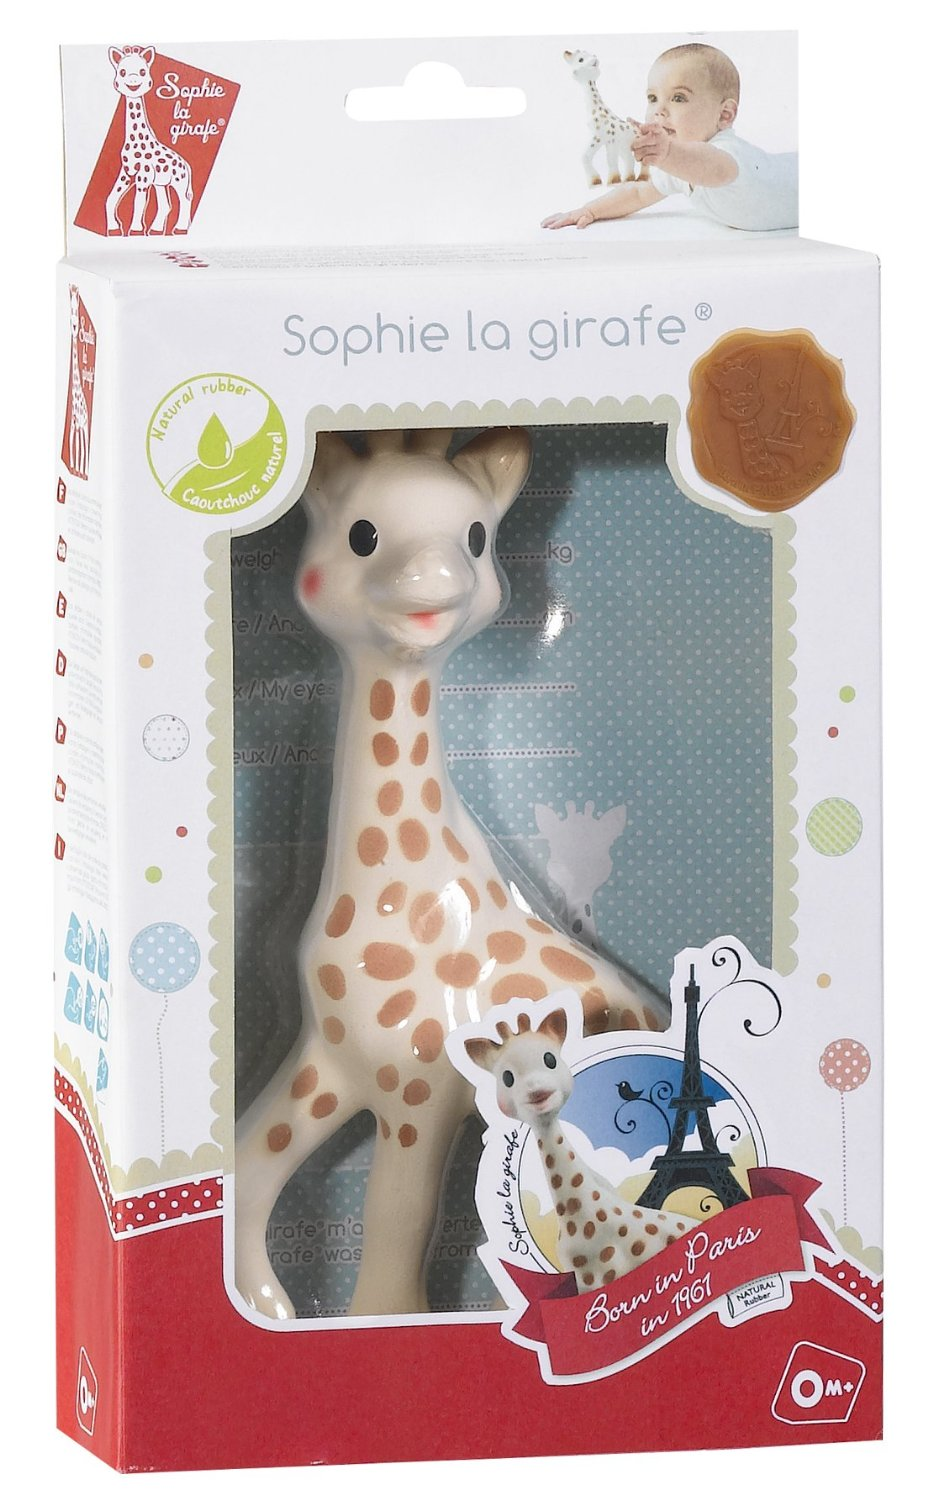 sophie la girafe en coffret cadeau. Black Bedroom Furniture Sets. Home Design Ideas